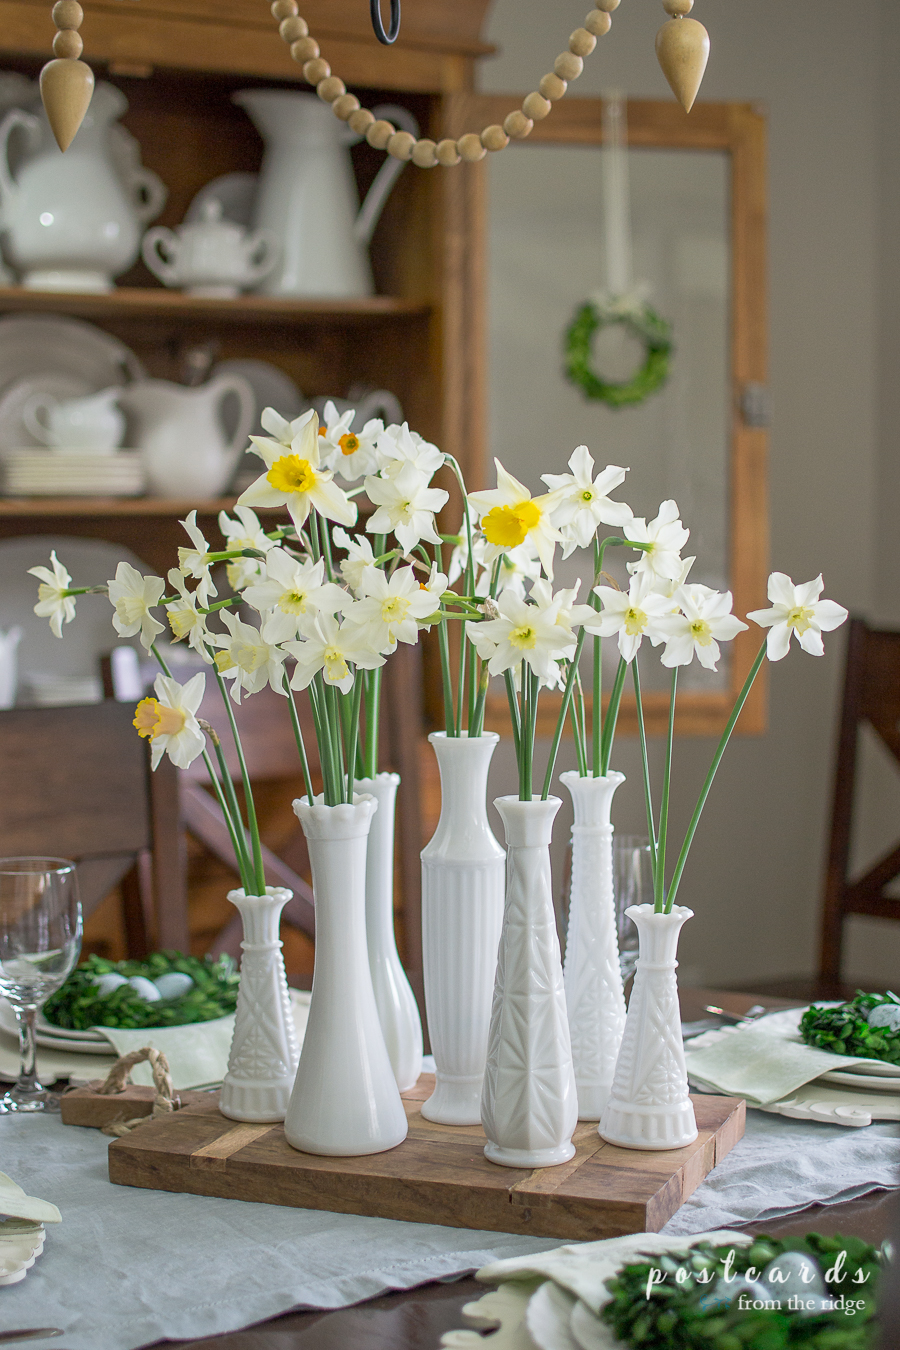 flowers in white milk glass vases grouped together as a centerpiece